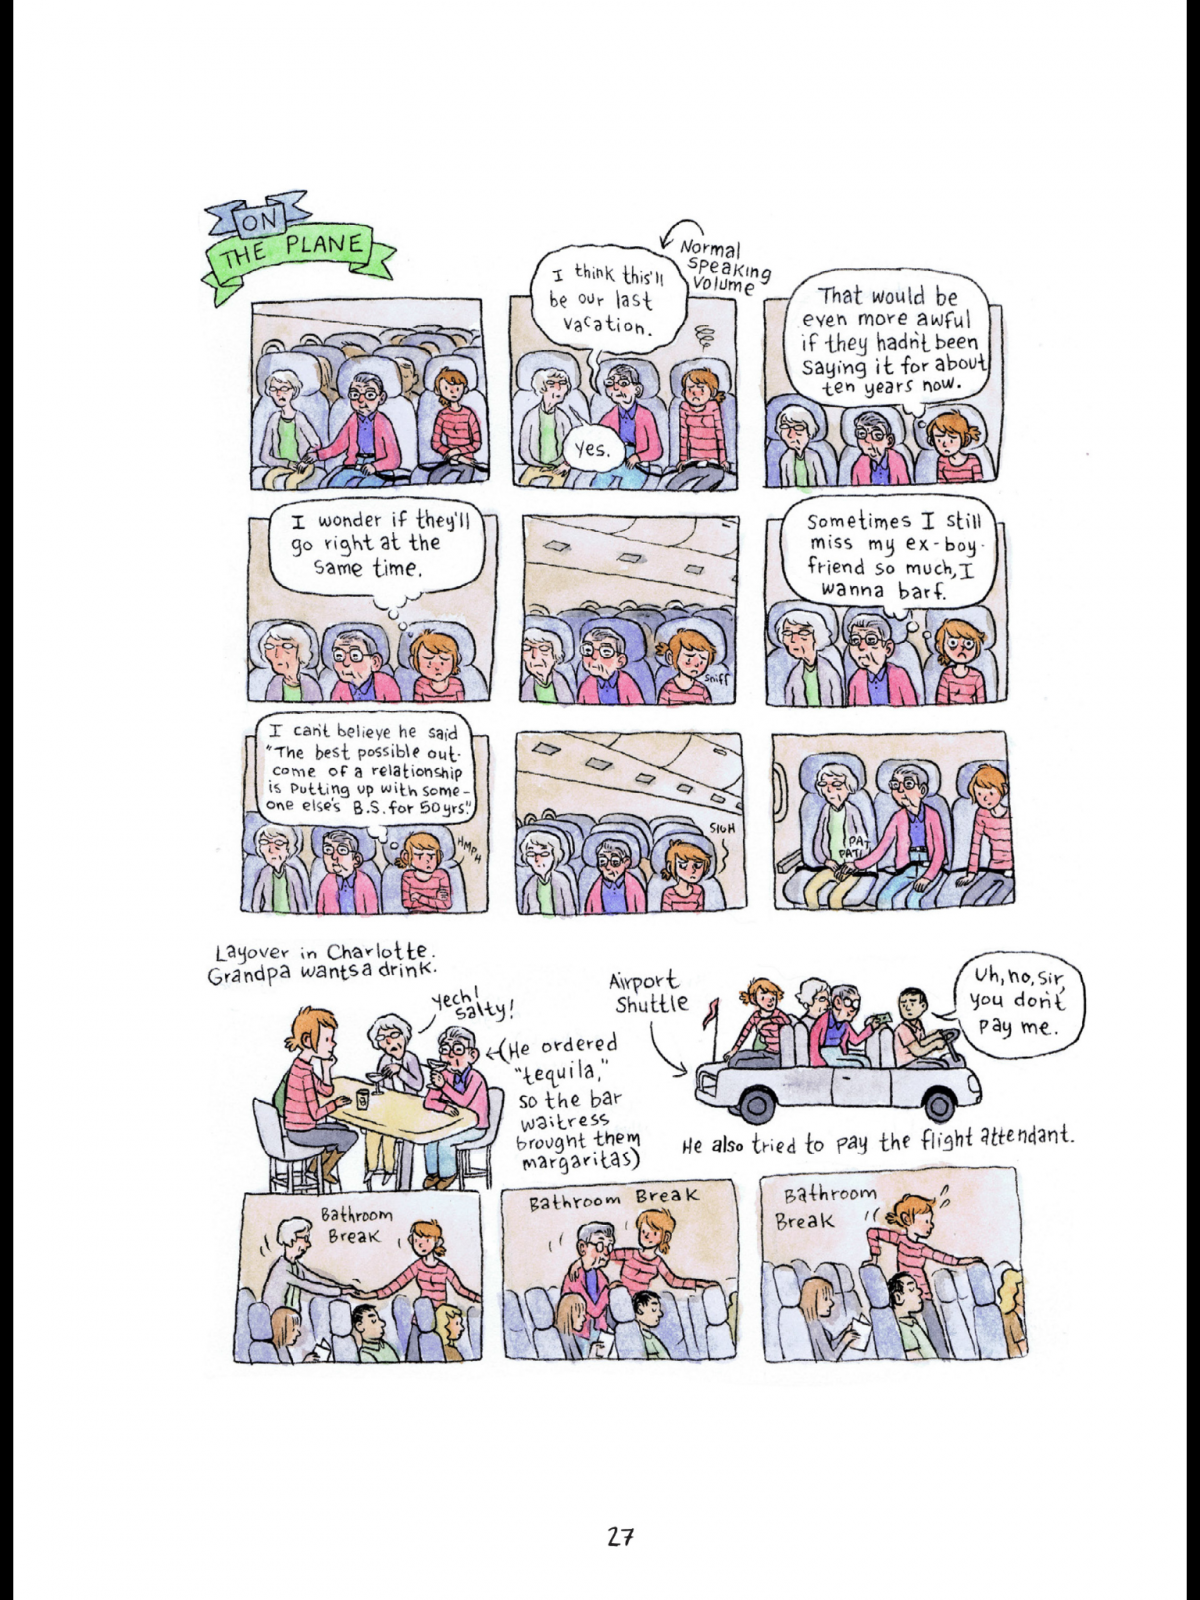 One Of The Major Pleasures Reading A Lucy Knisley Comic Is Her Structural Playfulness Each Works Contains Experiments And Surprises